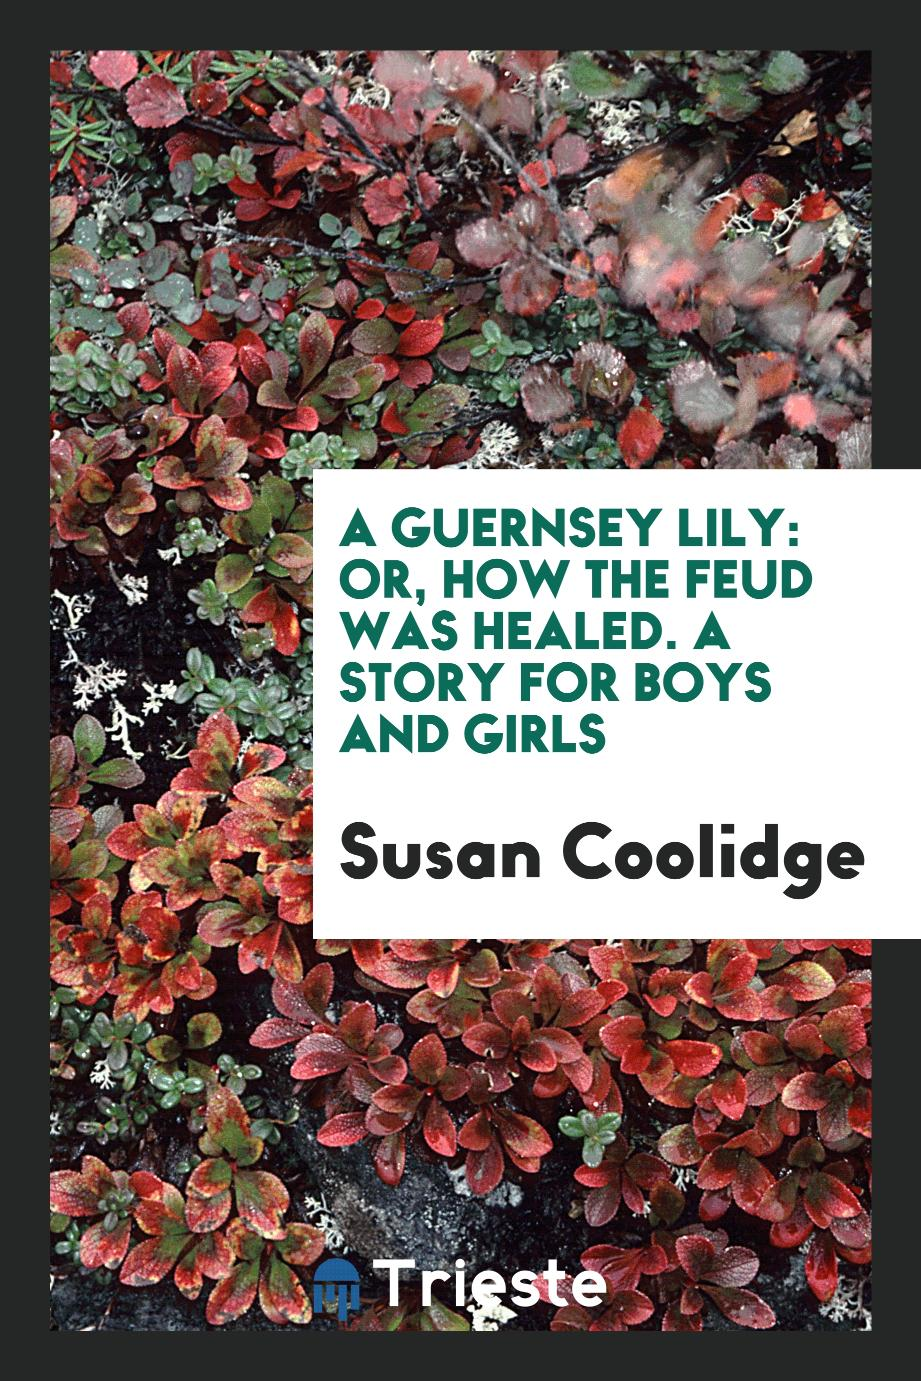 A Guernsey Lily: Or, How the Feud Was Healed. A Story for Boys and Girls